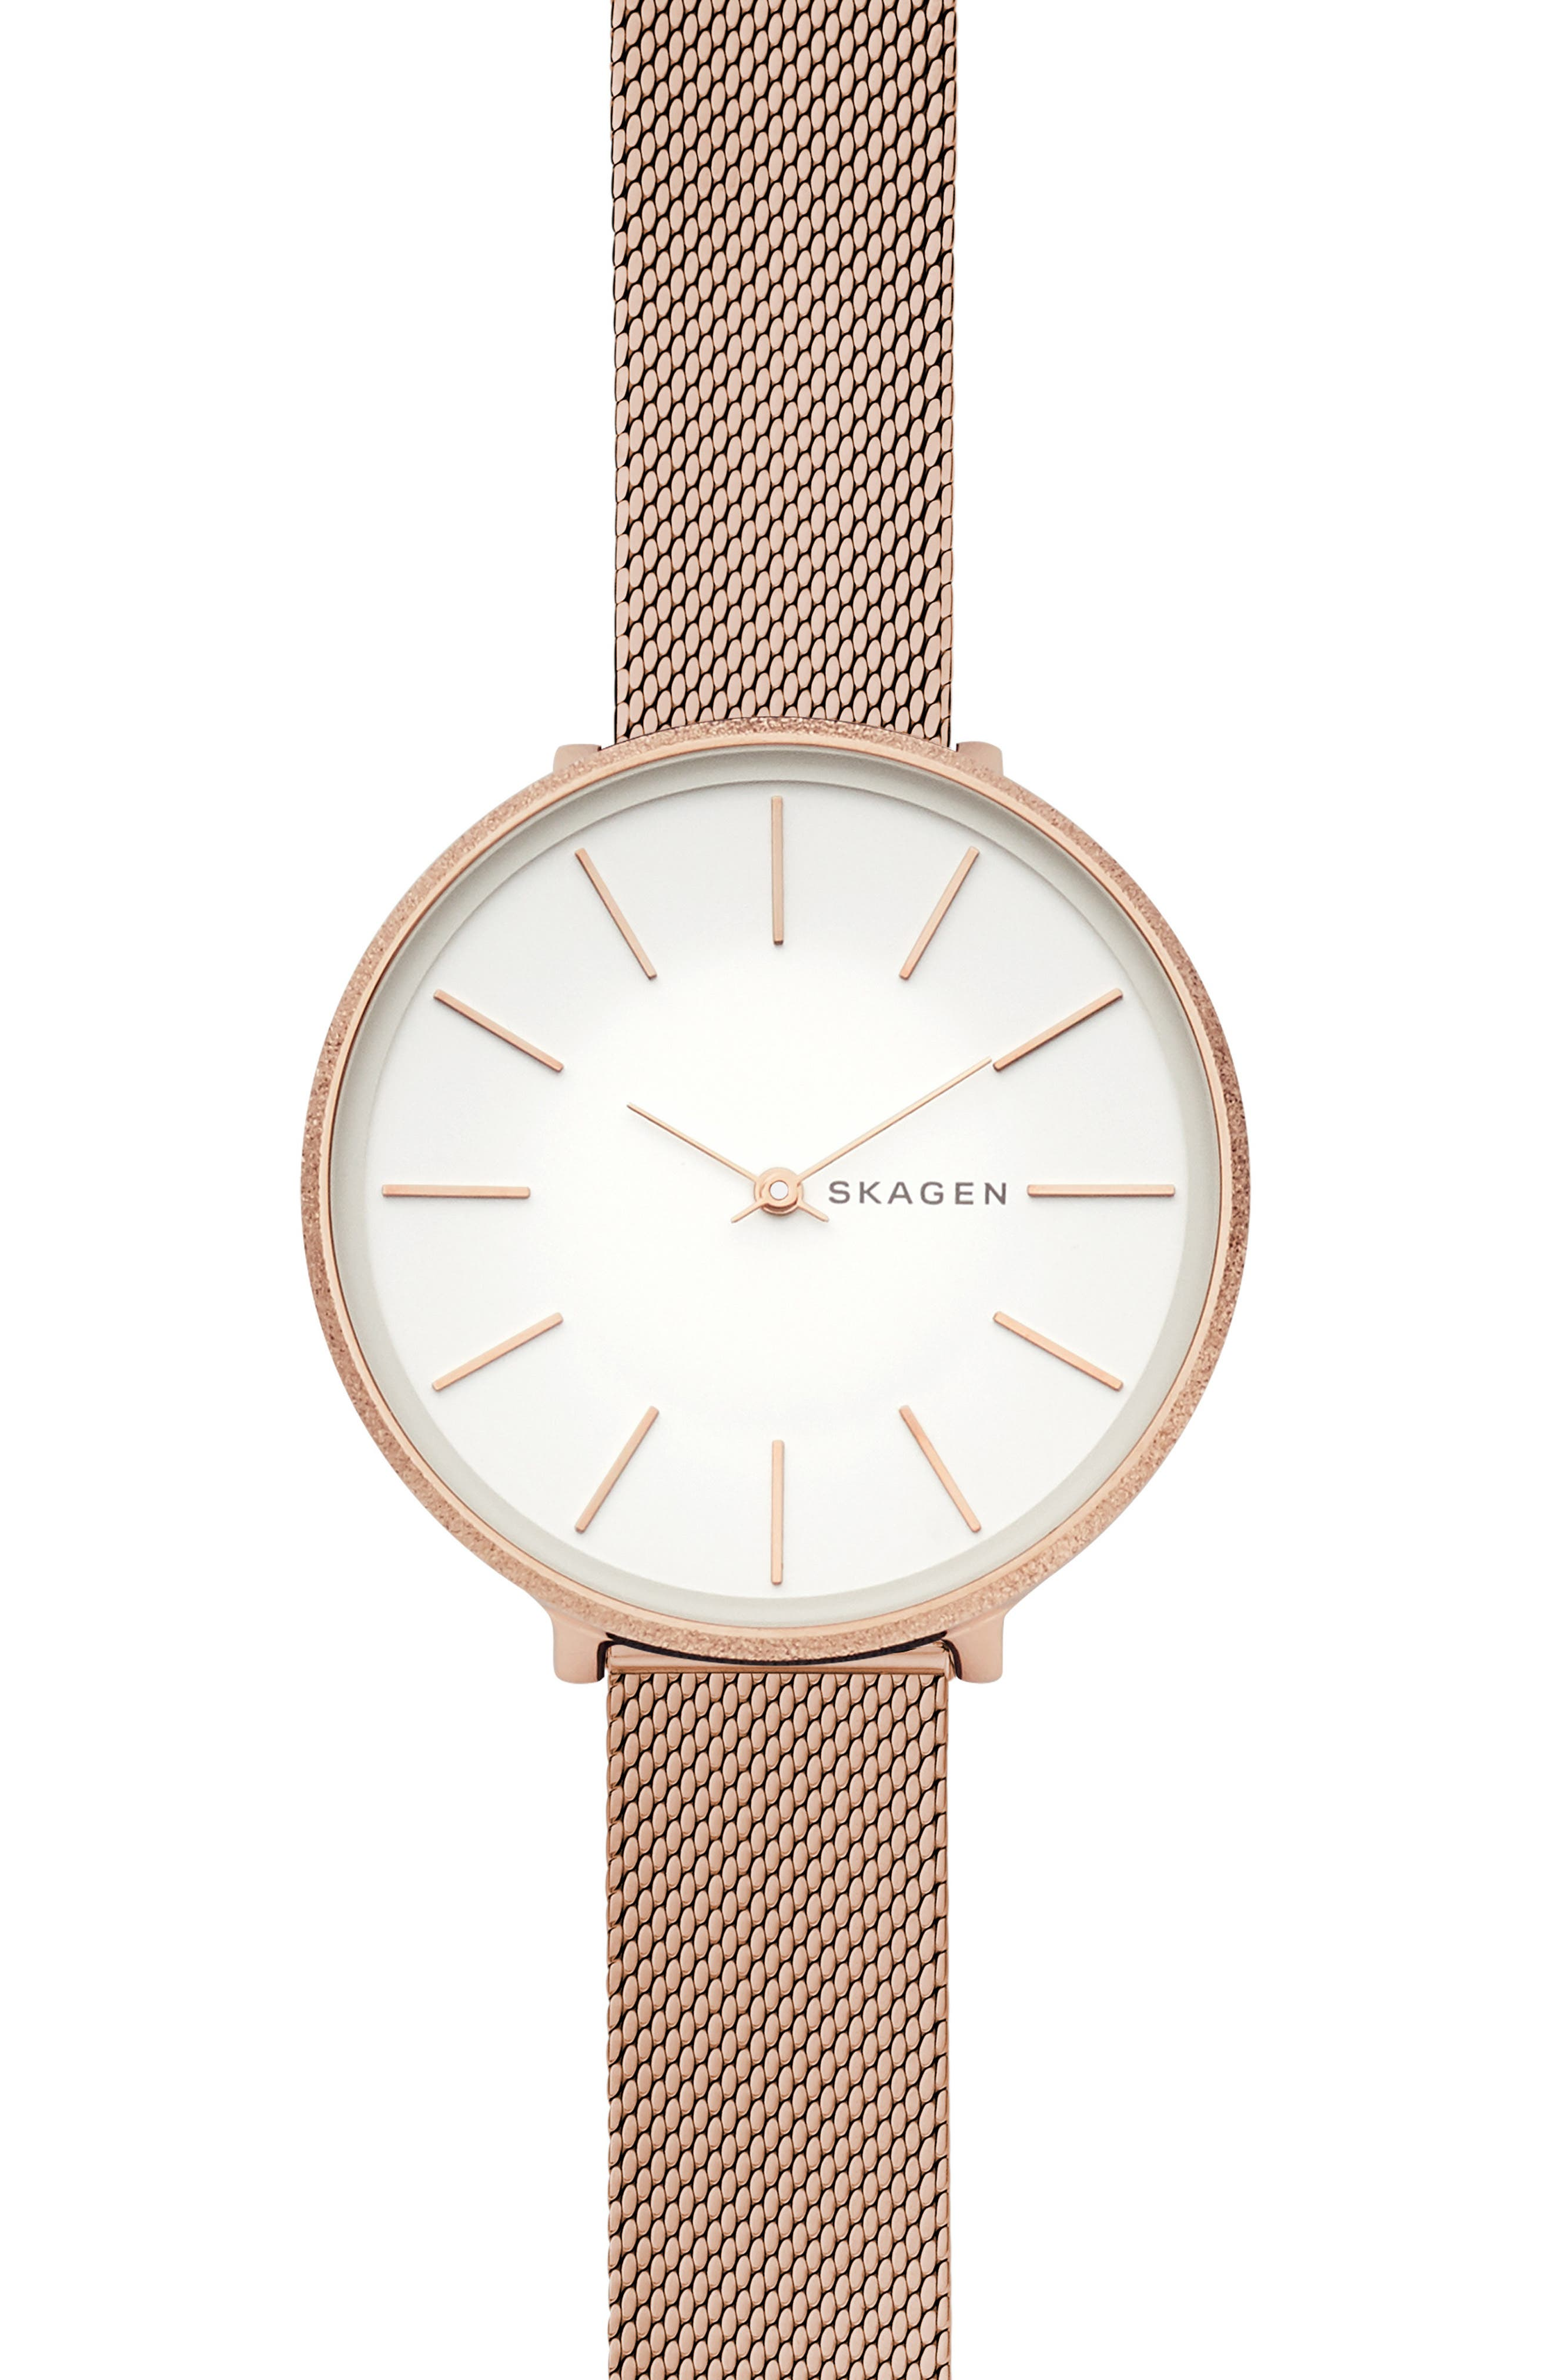 SKAGEN WOMEN'S KAROLINA ROSE GOLD-TONE STAINLESS STEEL MESH BRACELET WATCH 38MM